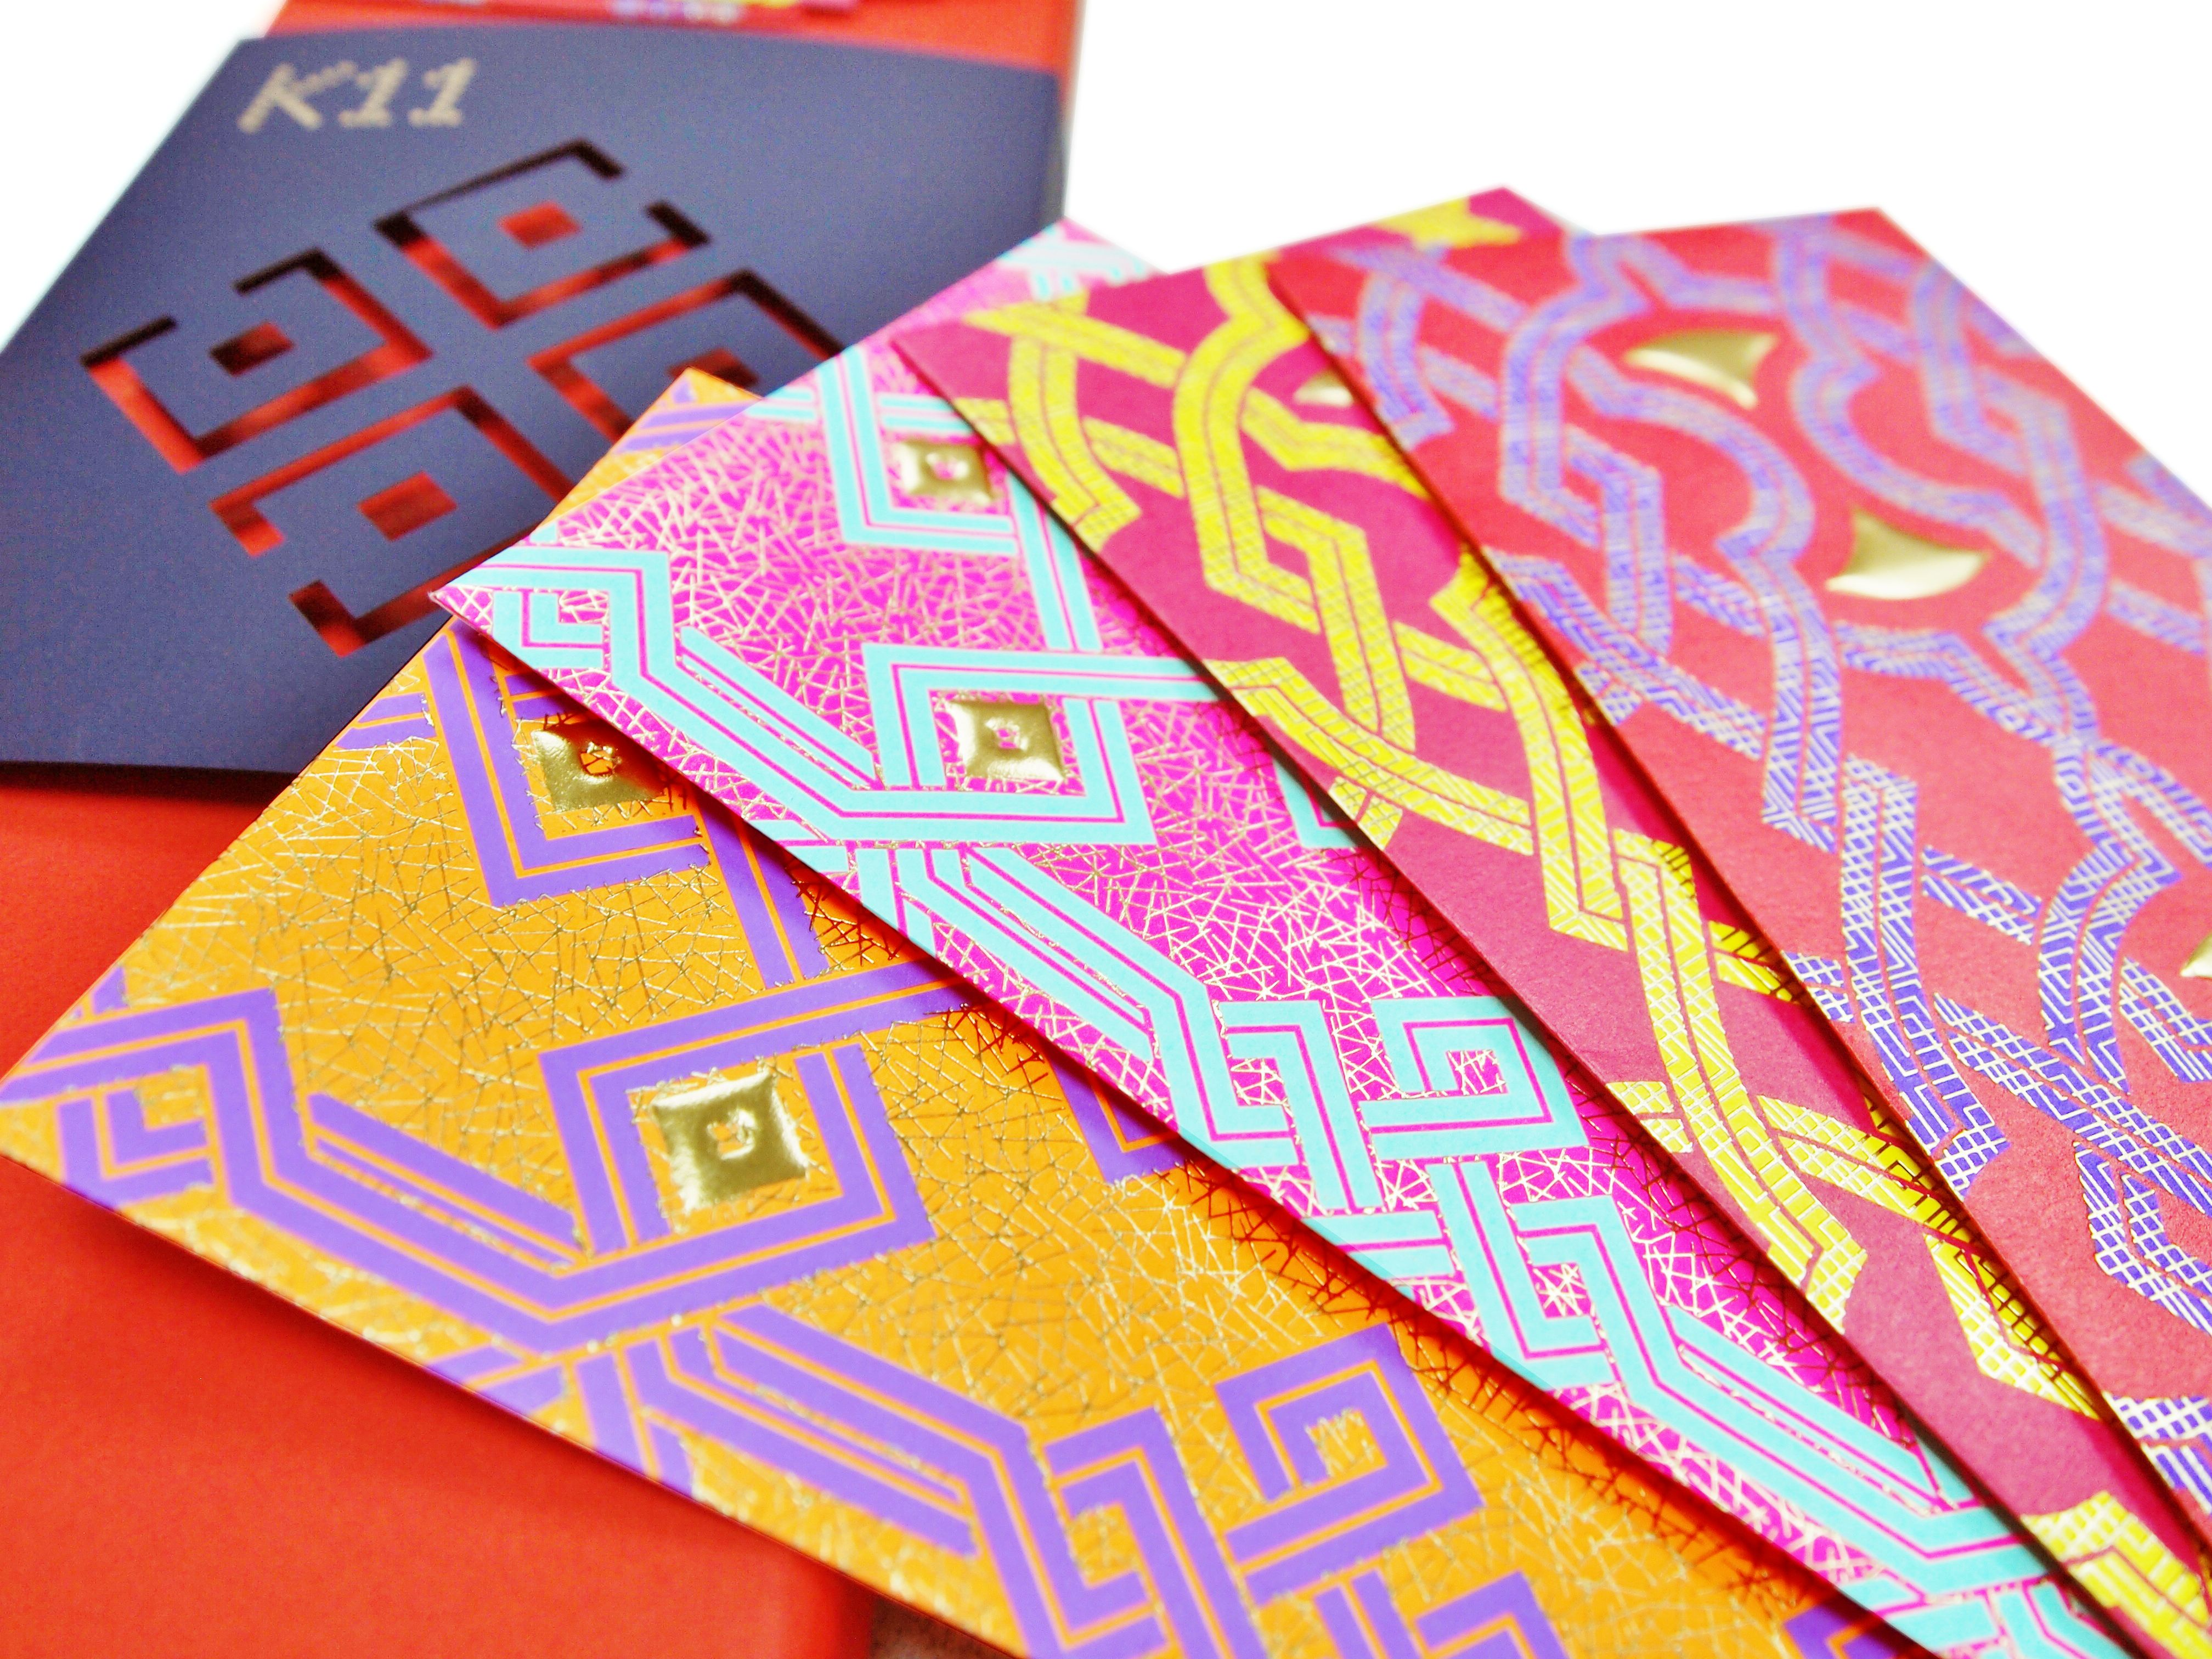 Chinese New Year red packet design, cross-over collaboration between K11 and Hong Kong local artist, Cathy Yiu.